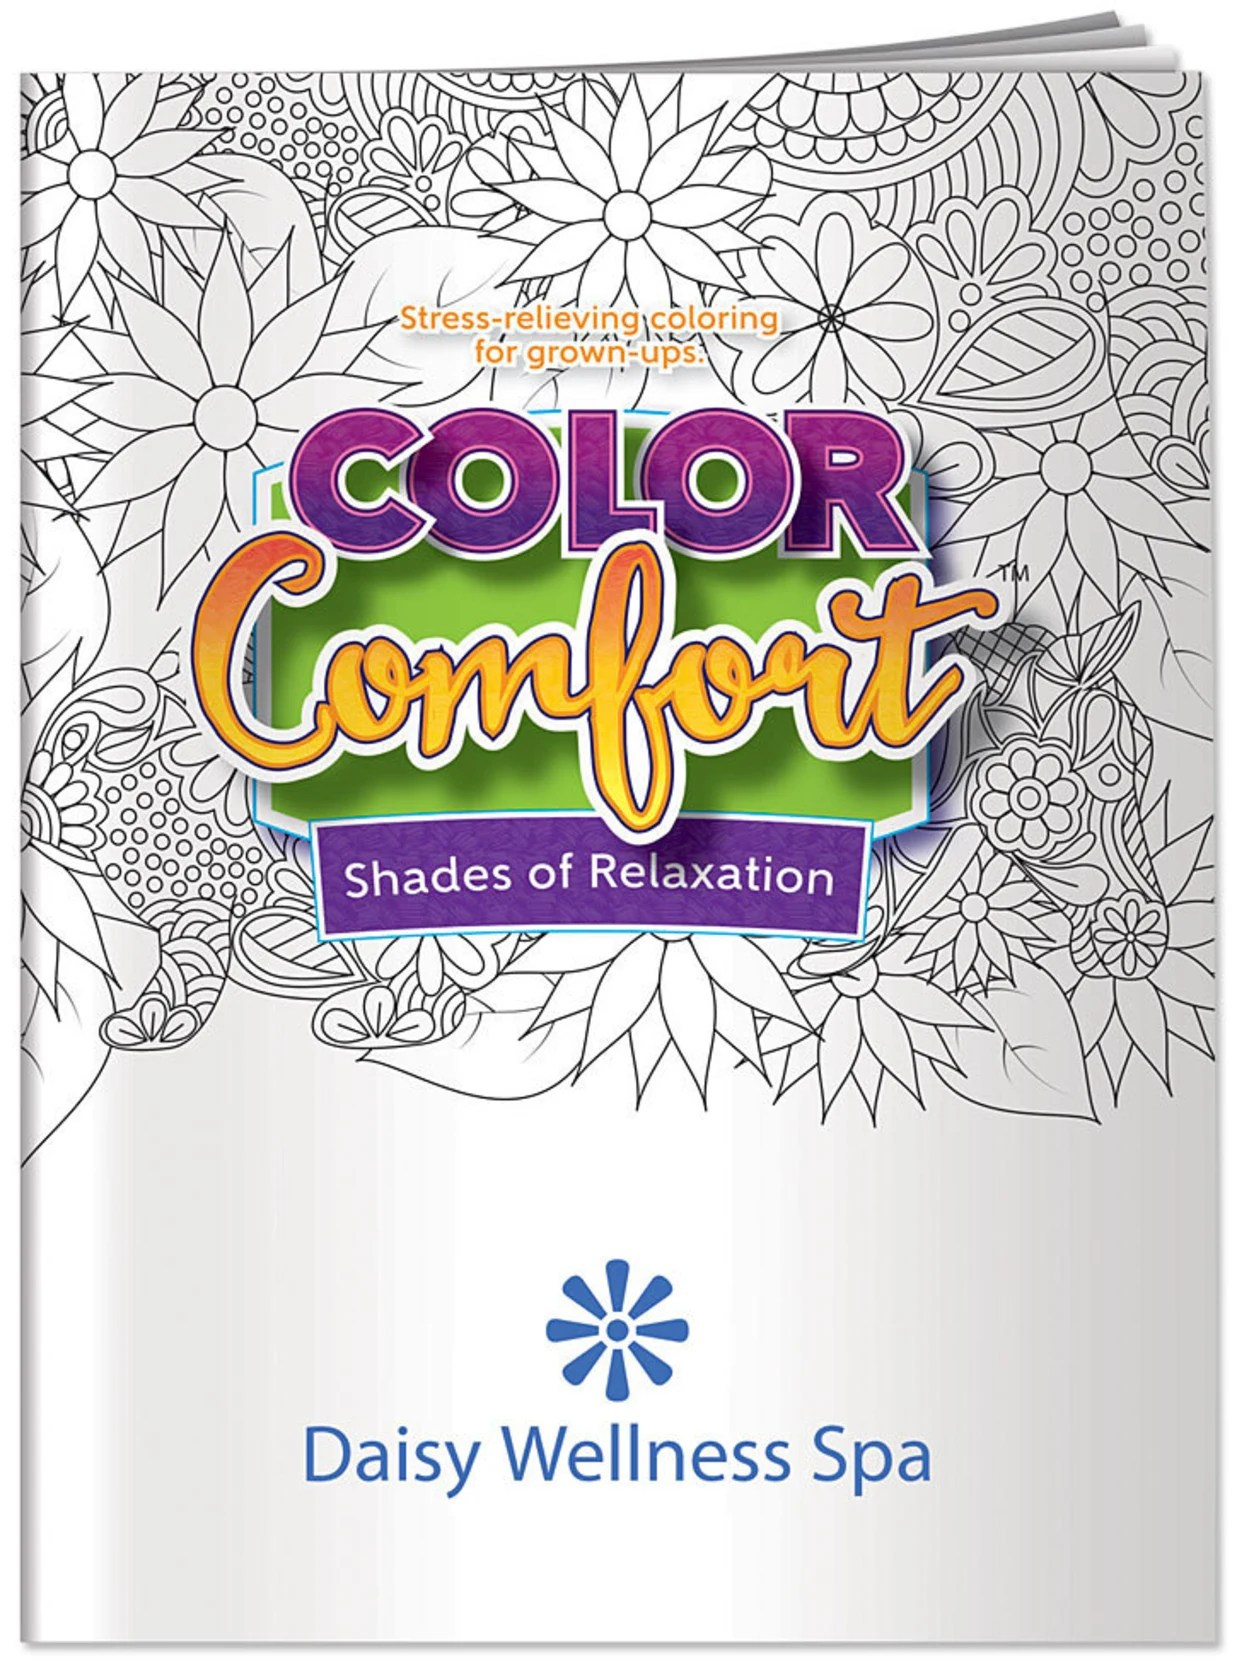 Color Comfort Adult Coloring Books Office Depot